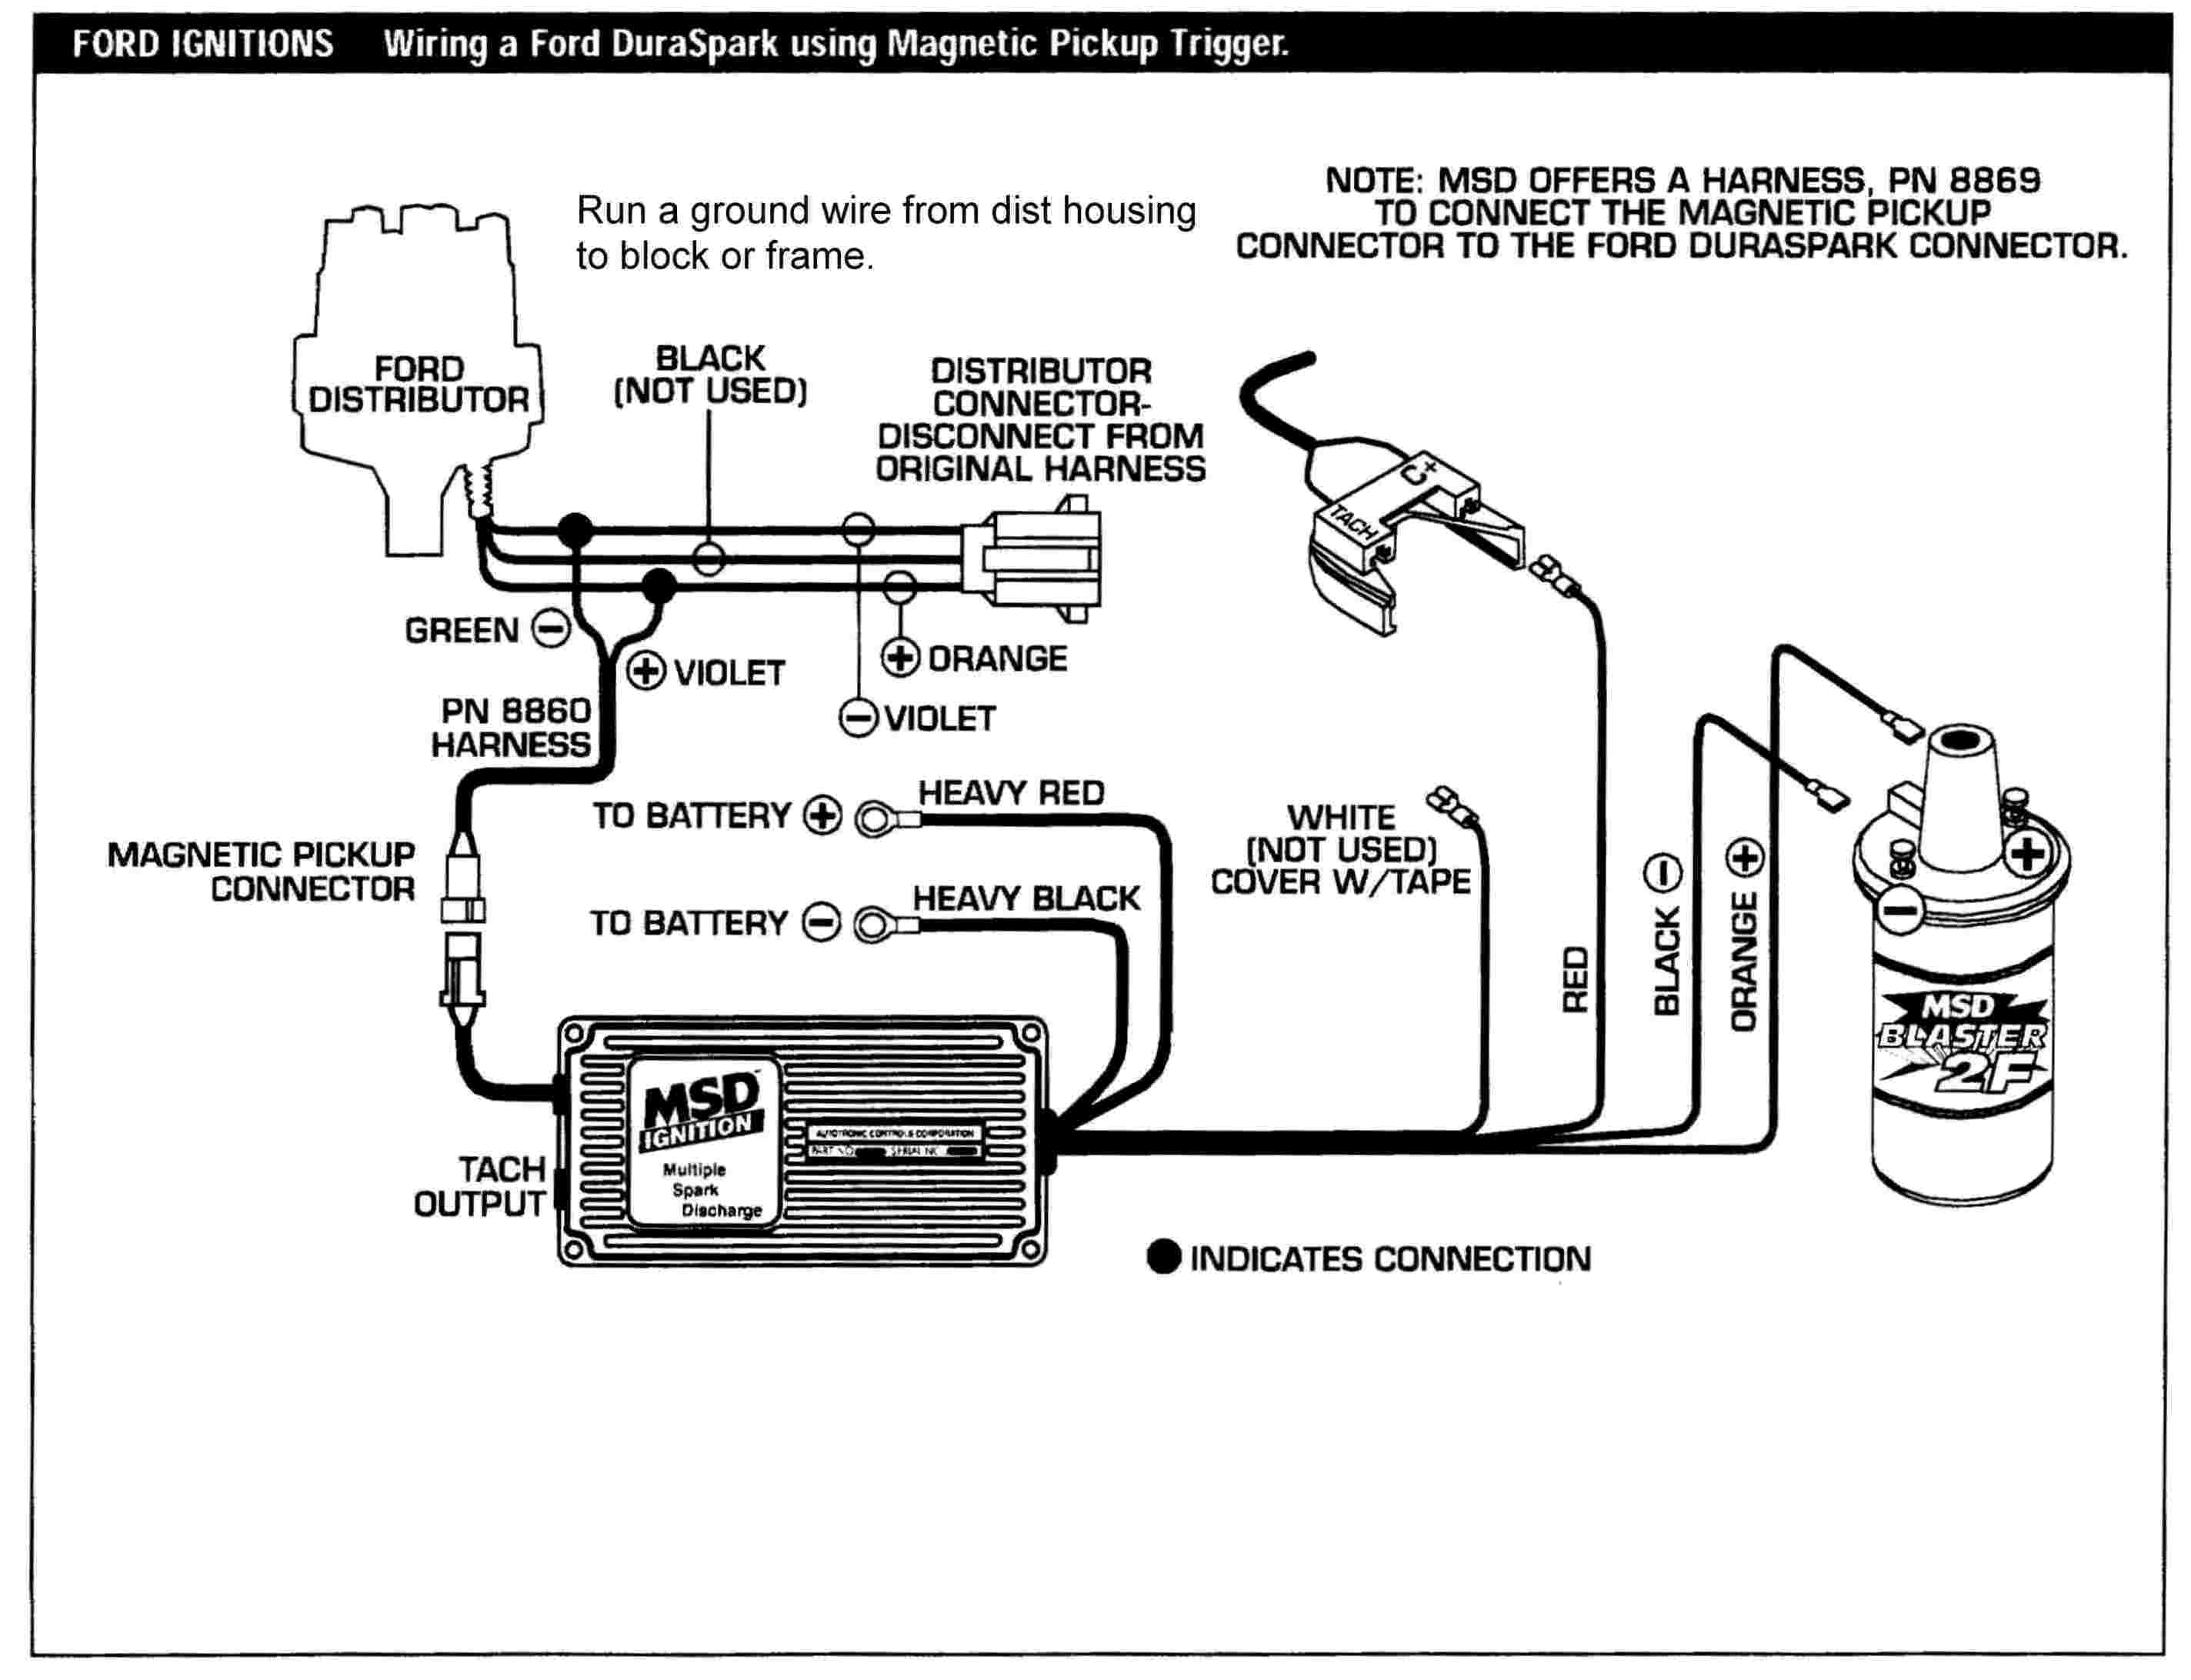 Ford Duraspark MSD schematic msd digital 6 plus wiring diagram msd digital 6 plus wiring msd mc4 wiring diagram at bayanpartner.co